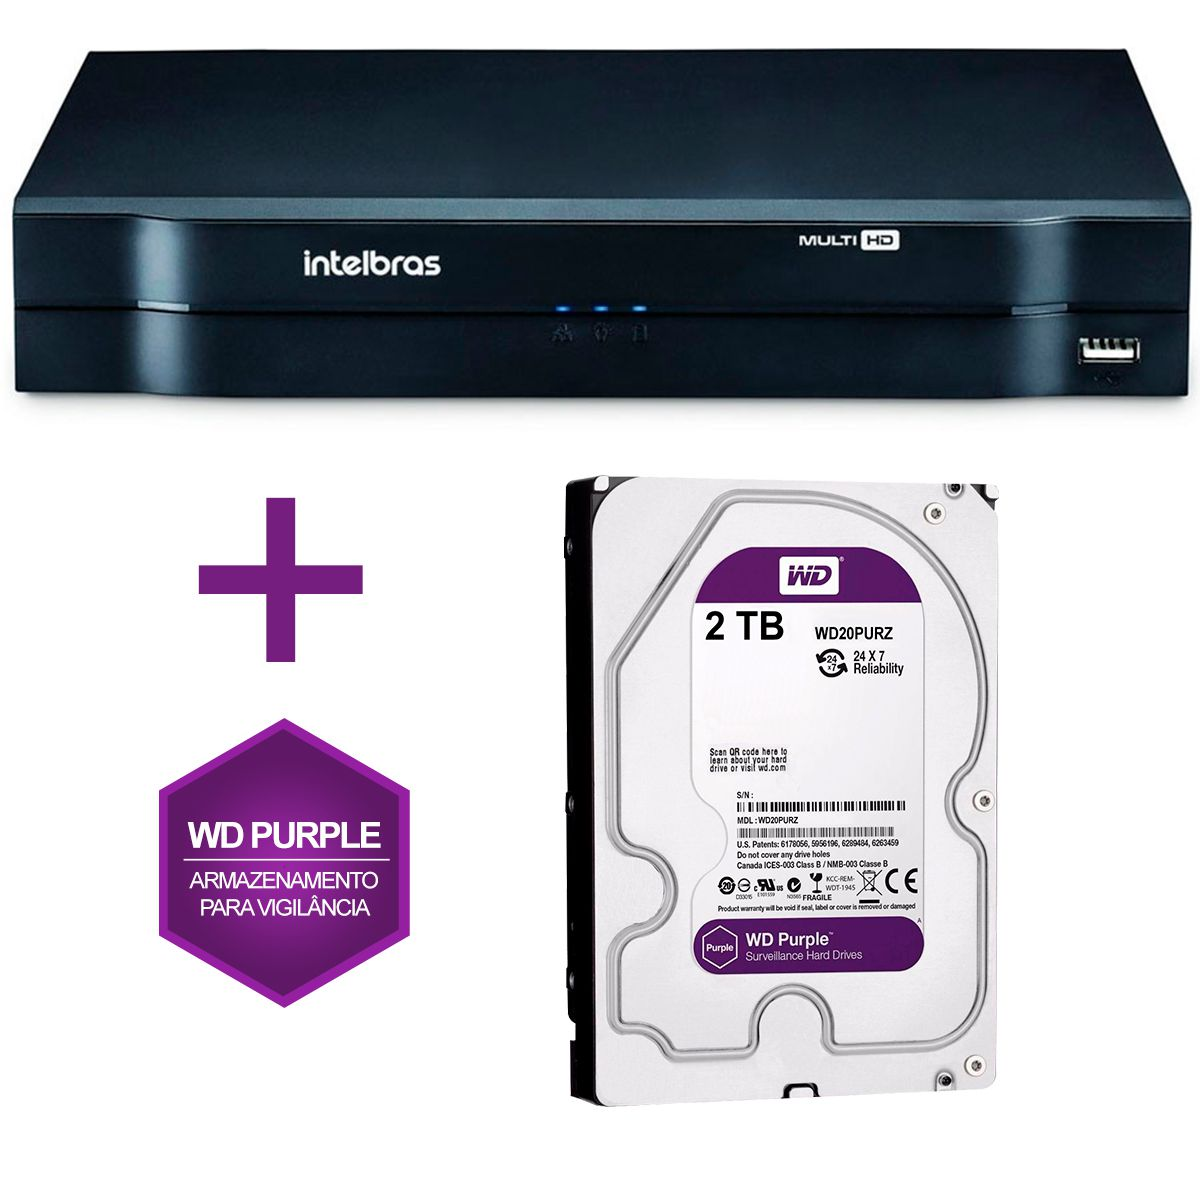 DVR Stand Alone Multi HD Intelbras MHDX-1008 08 Canais + HD 2TB WD Purple de CFTV  - Tudo Forte